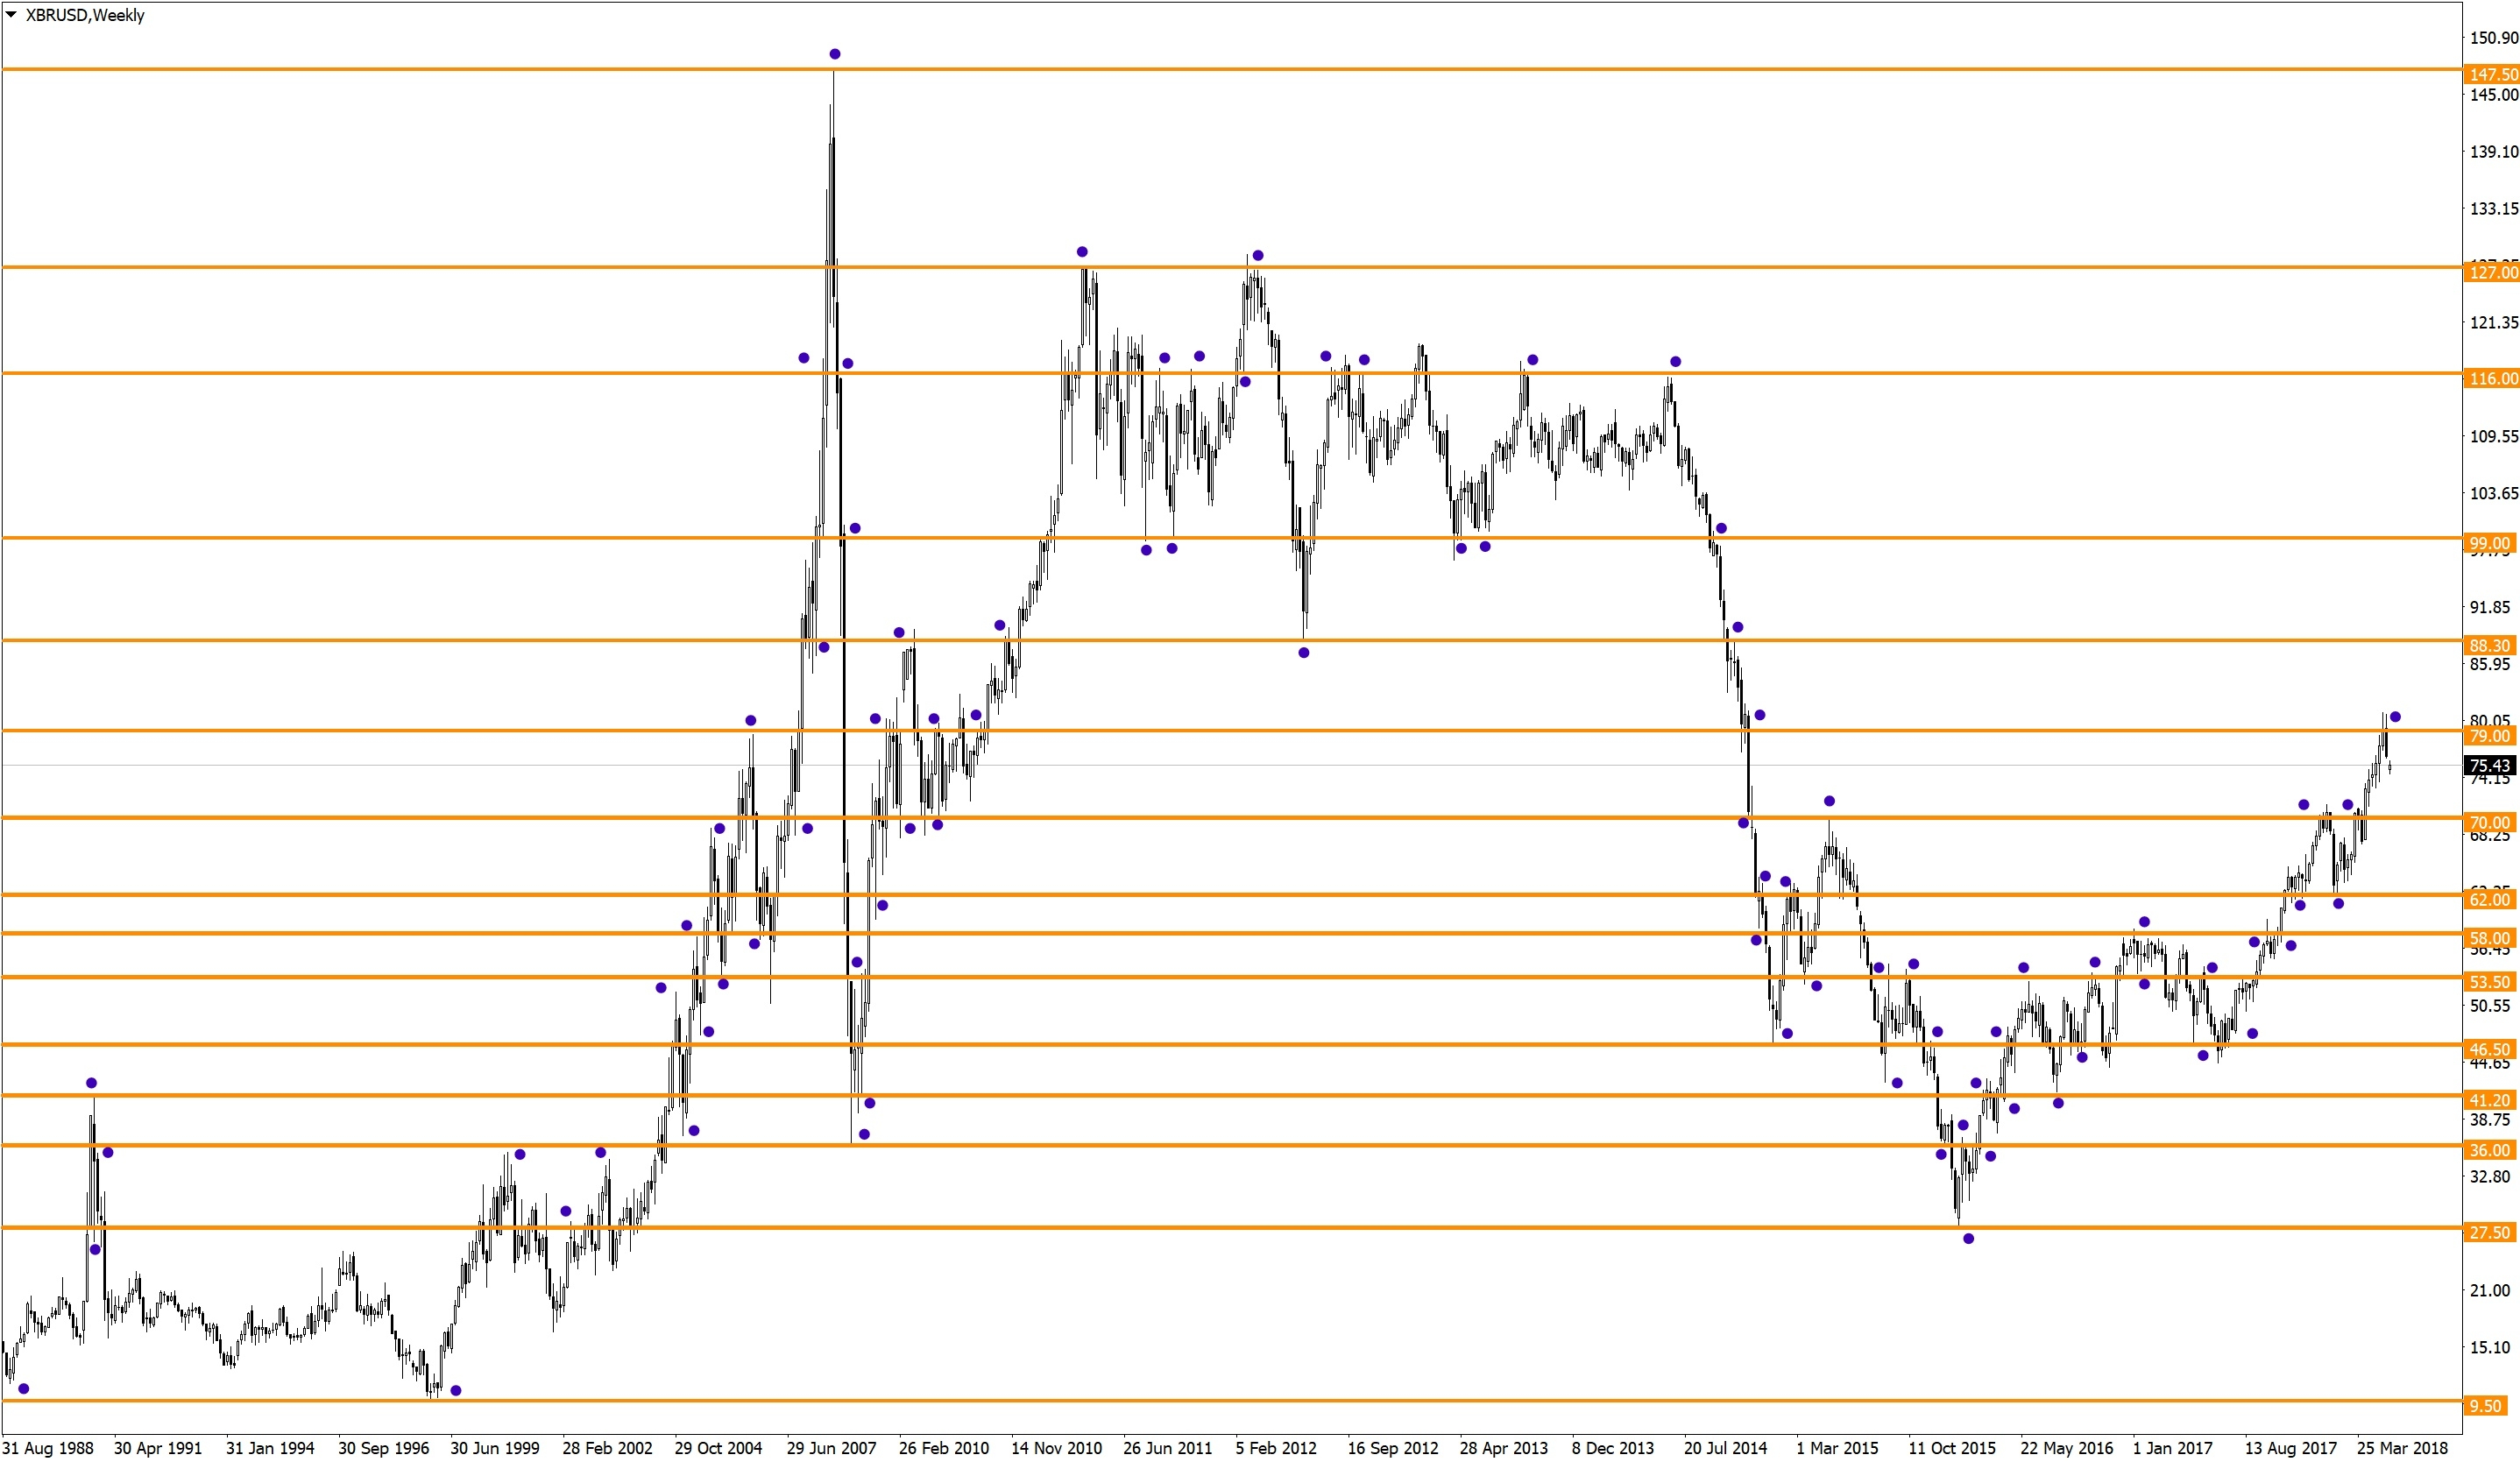 Long-term levels for Brent crude (XBRUSD)